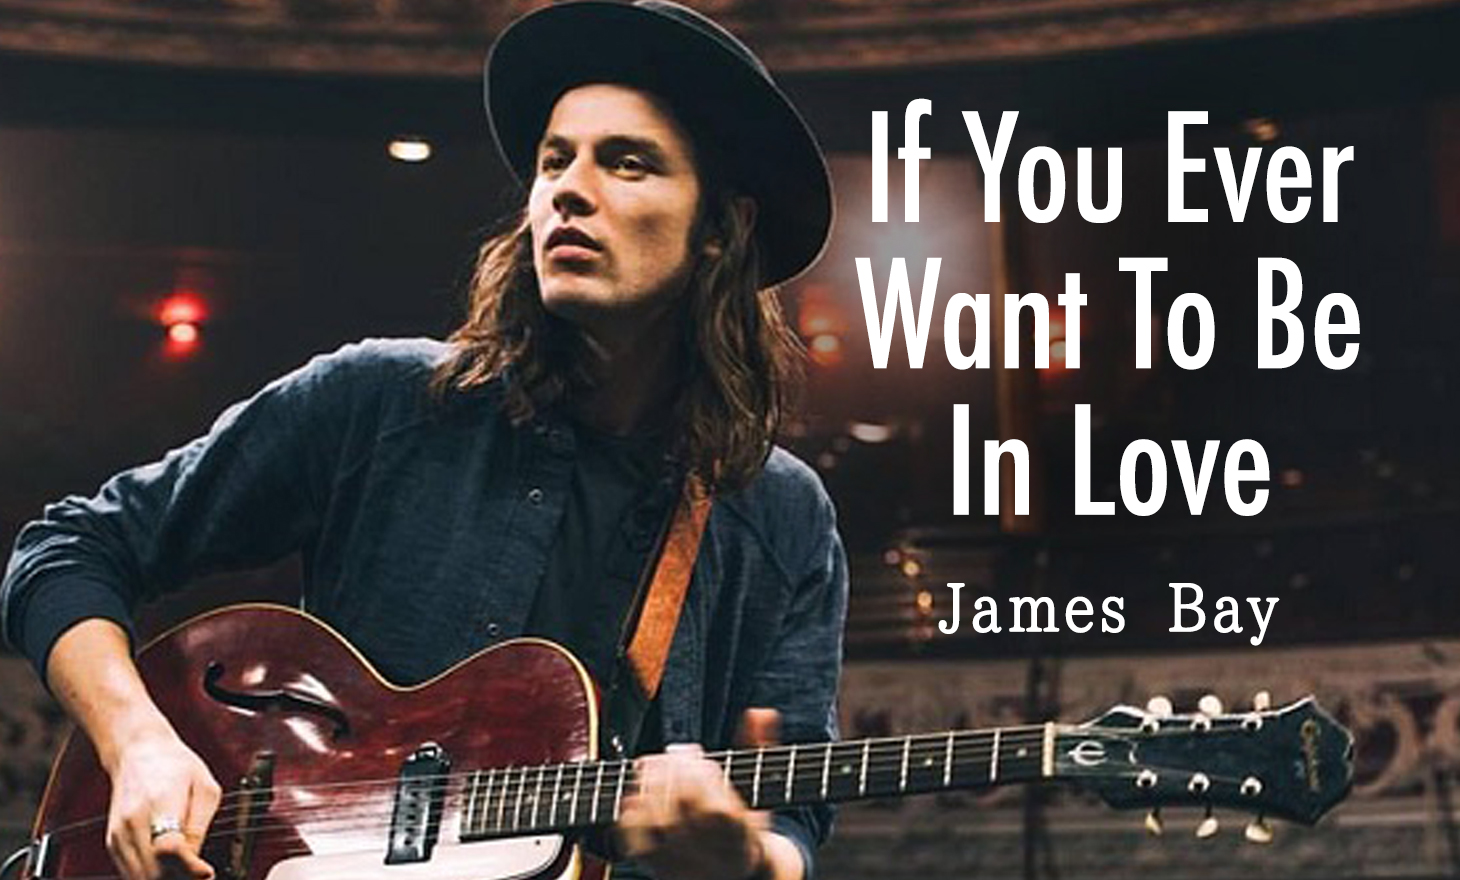 James Bay : If You Ever Want To Be In Love